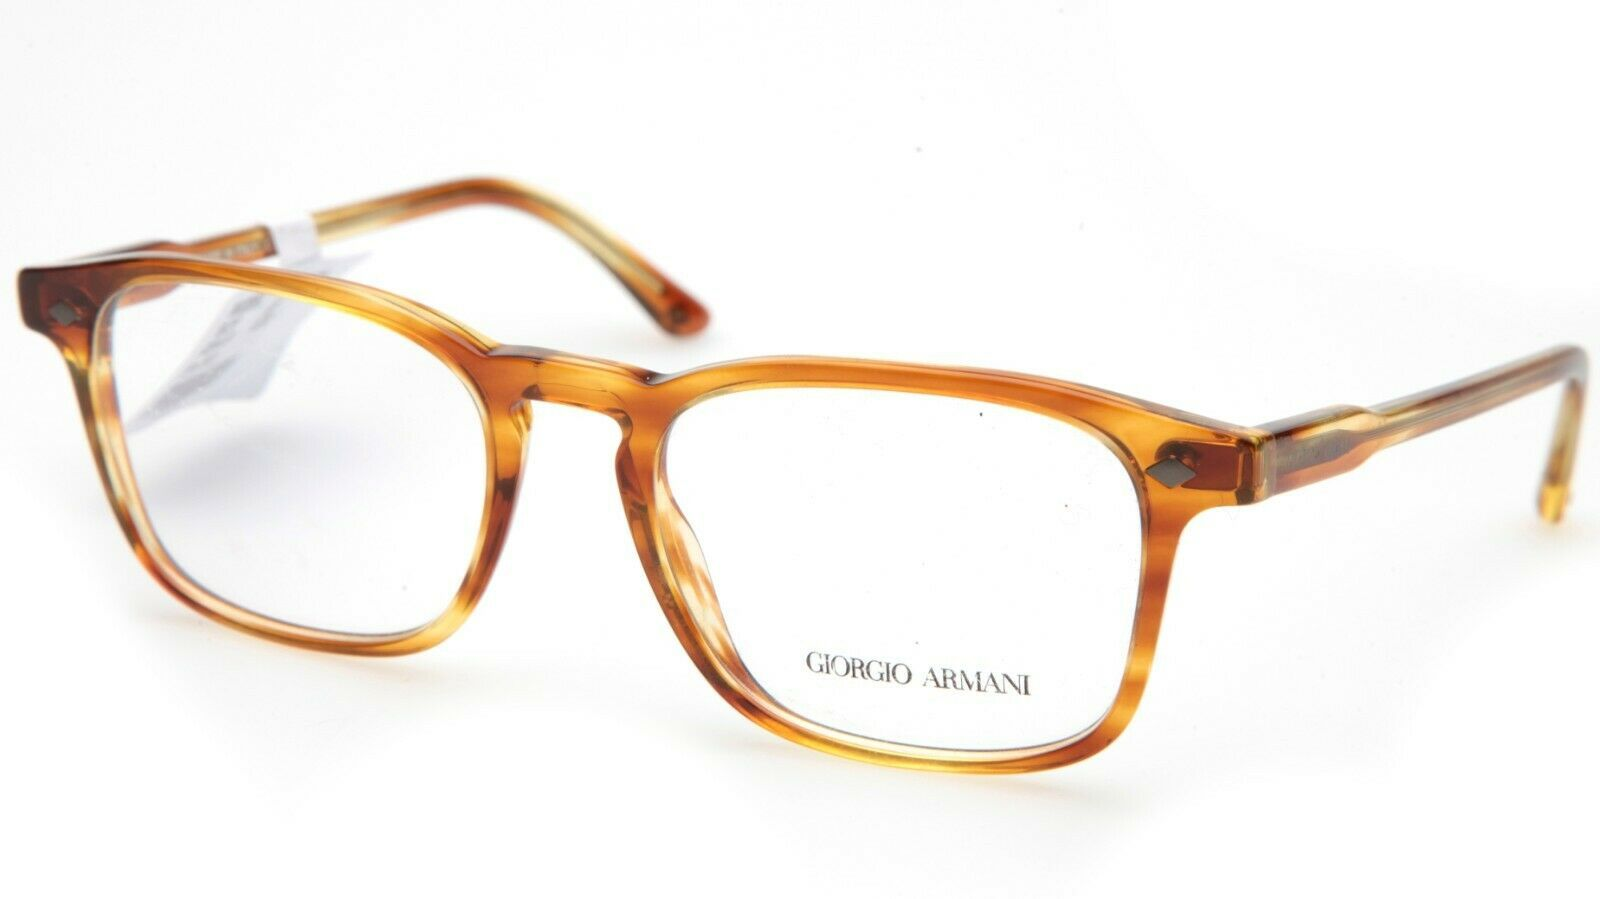 Primary image for New GIORGIO ARMANI AR8103-V 5579 HAVANA EYEGLASSES FRAME 53-19-145mm B40mm Italy